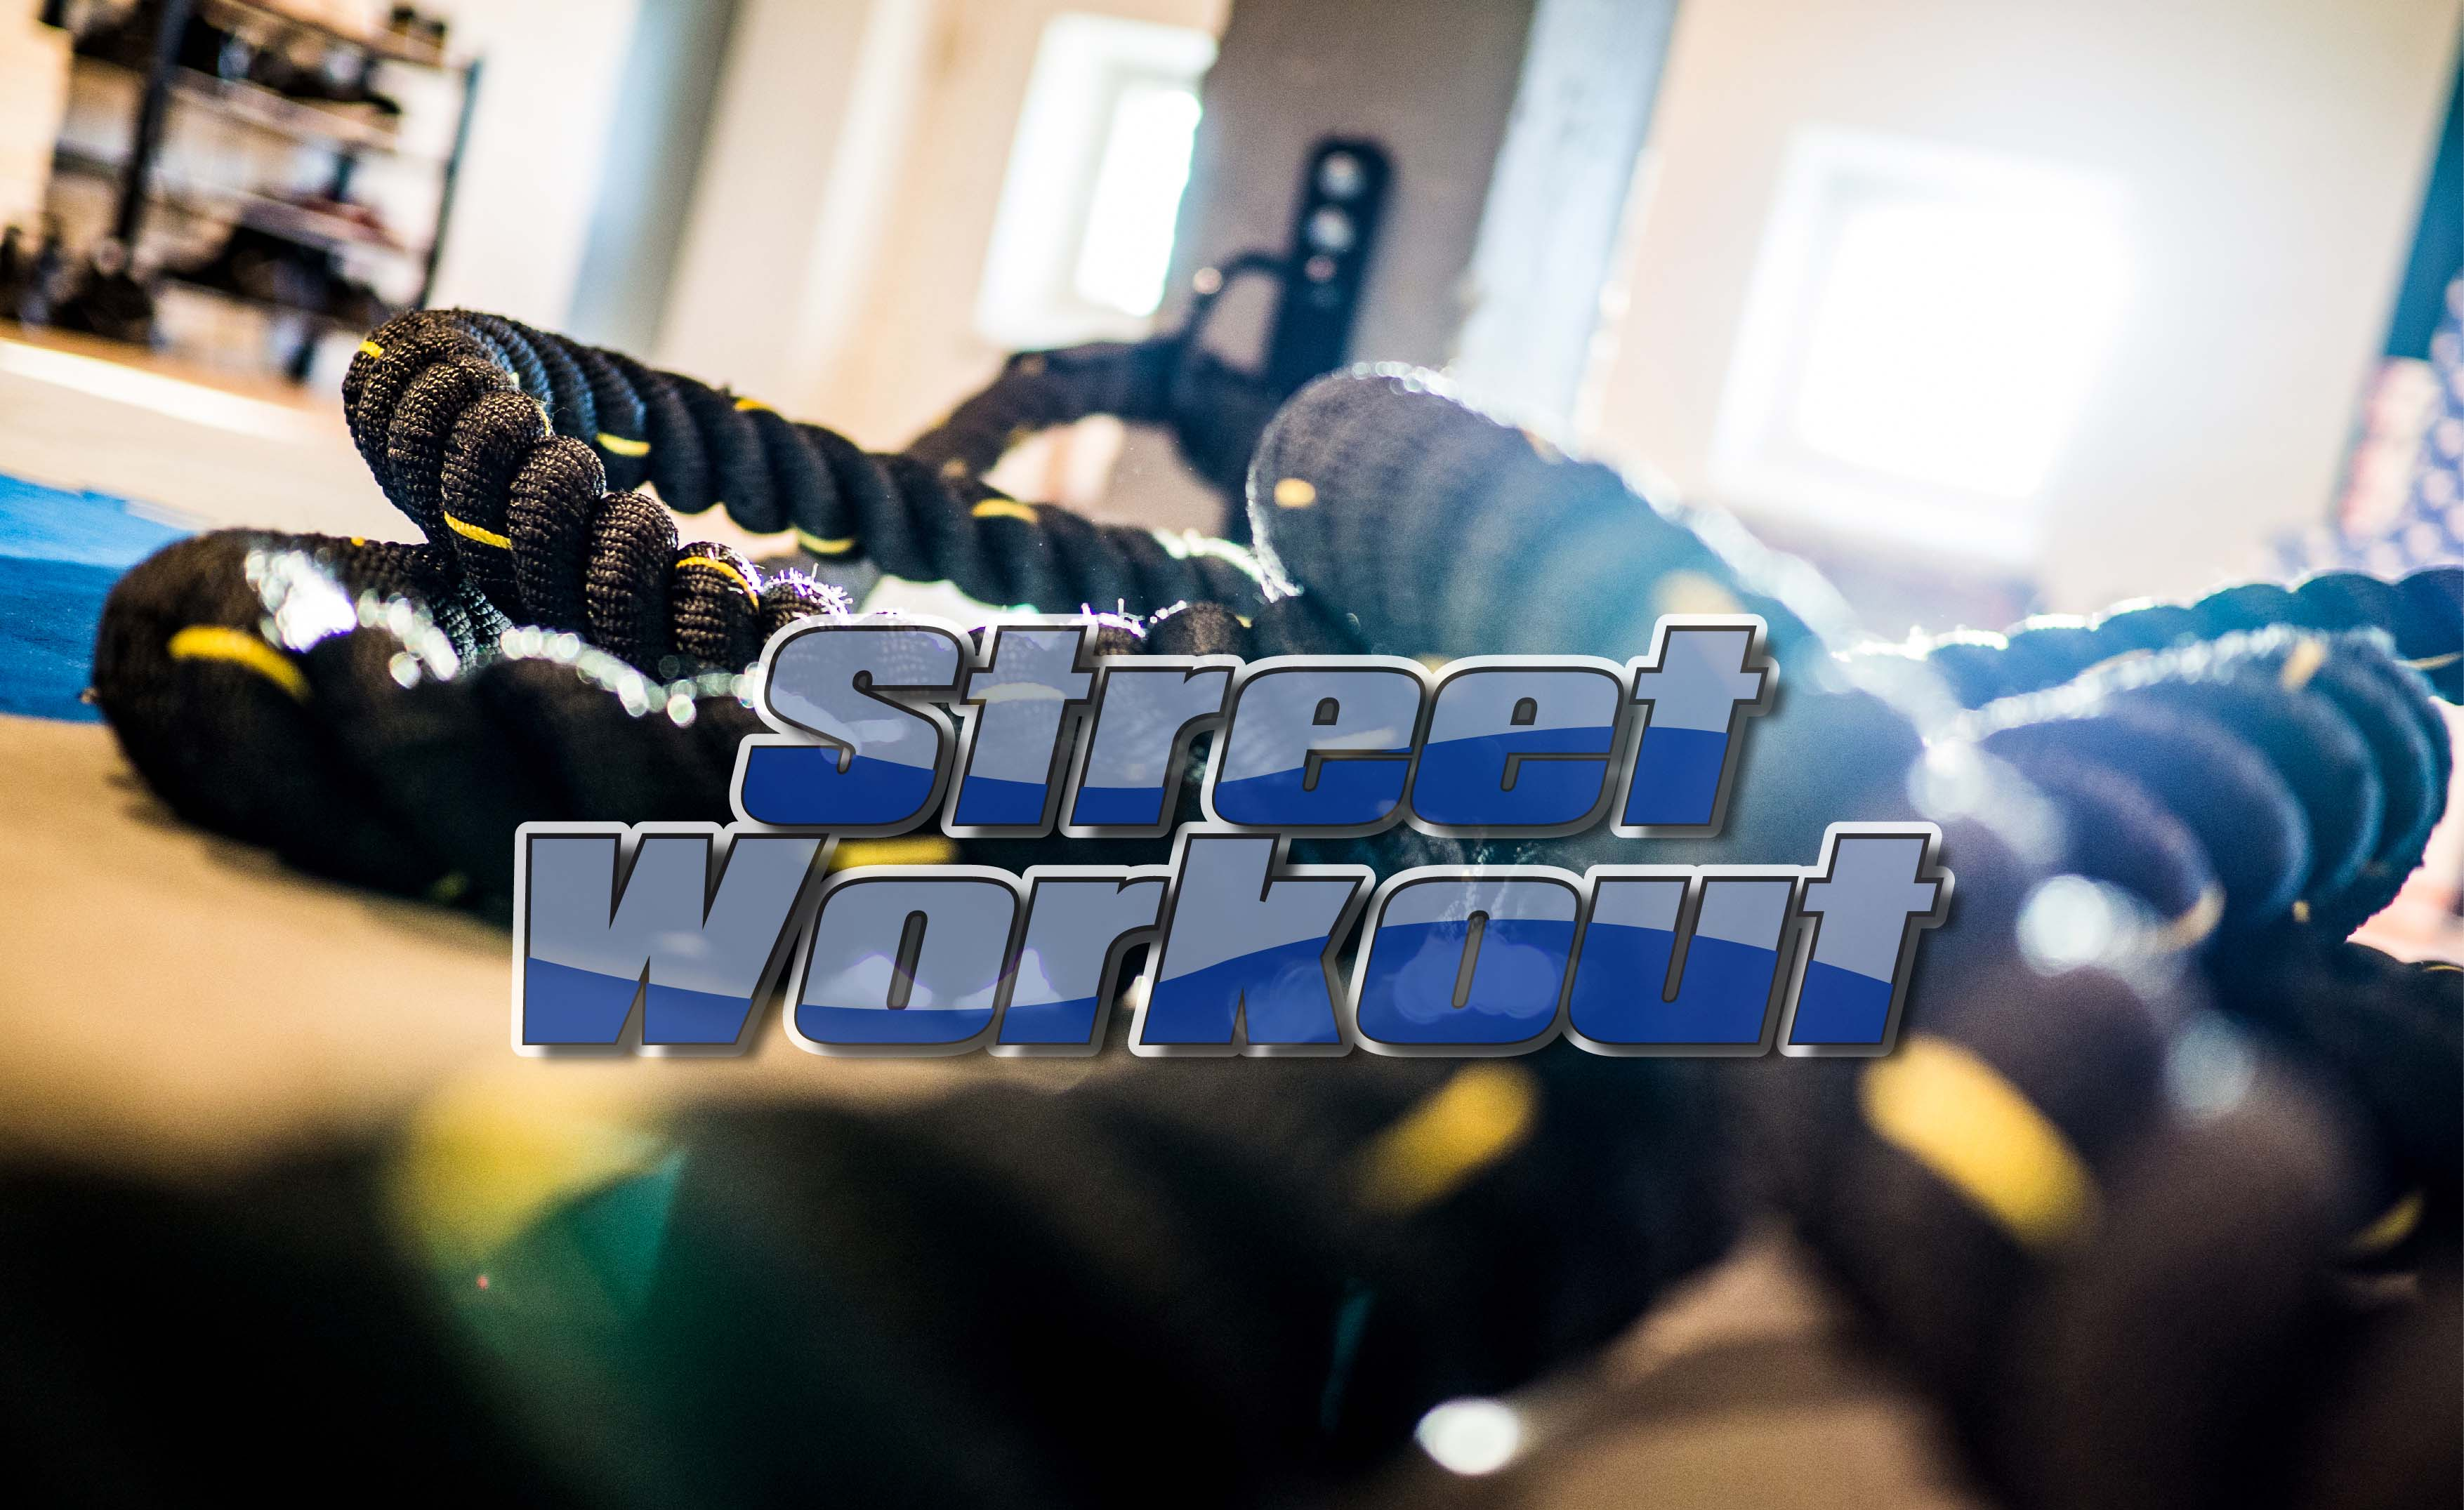 street workout nuorille